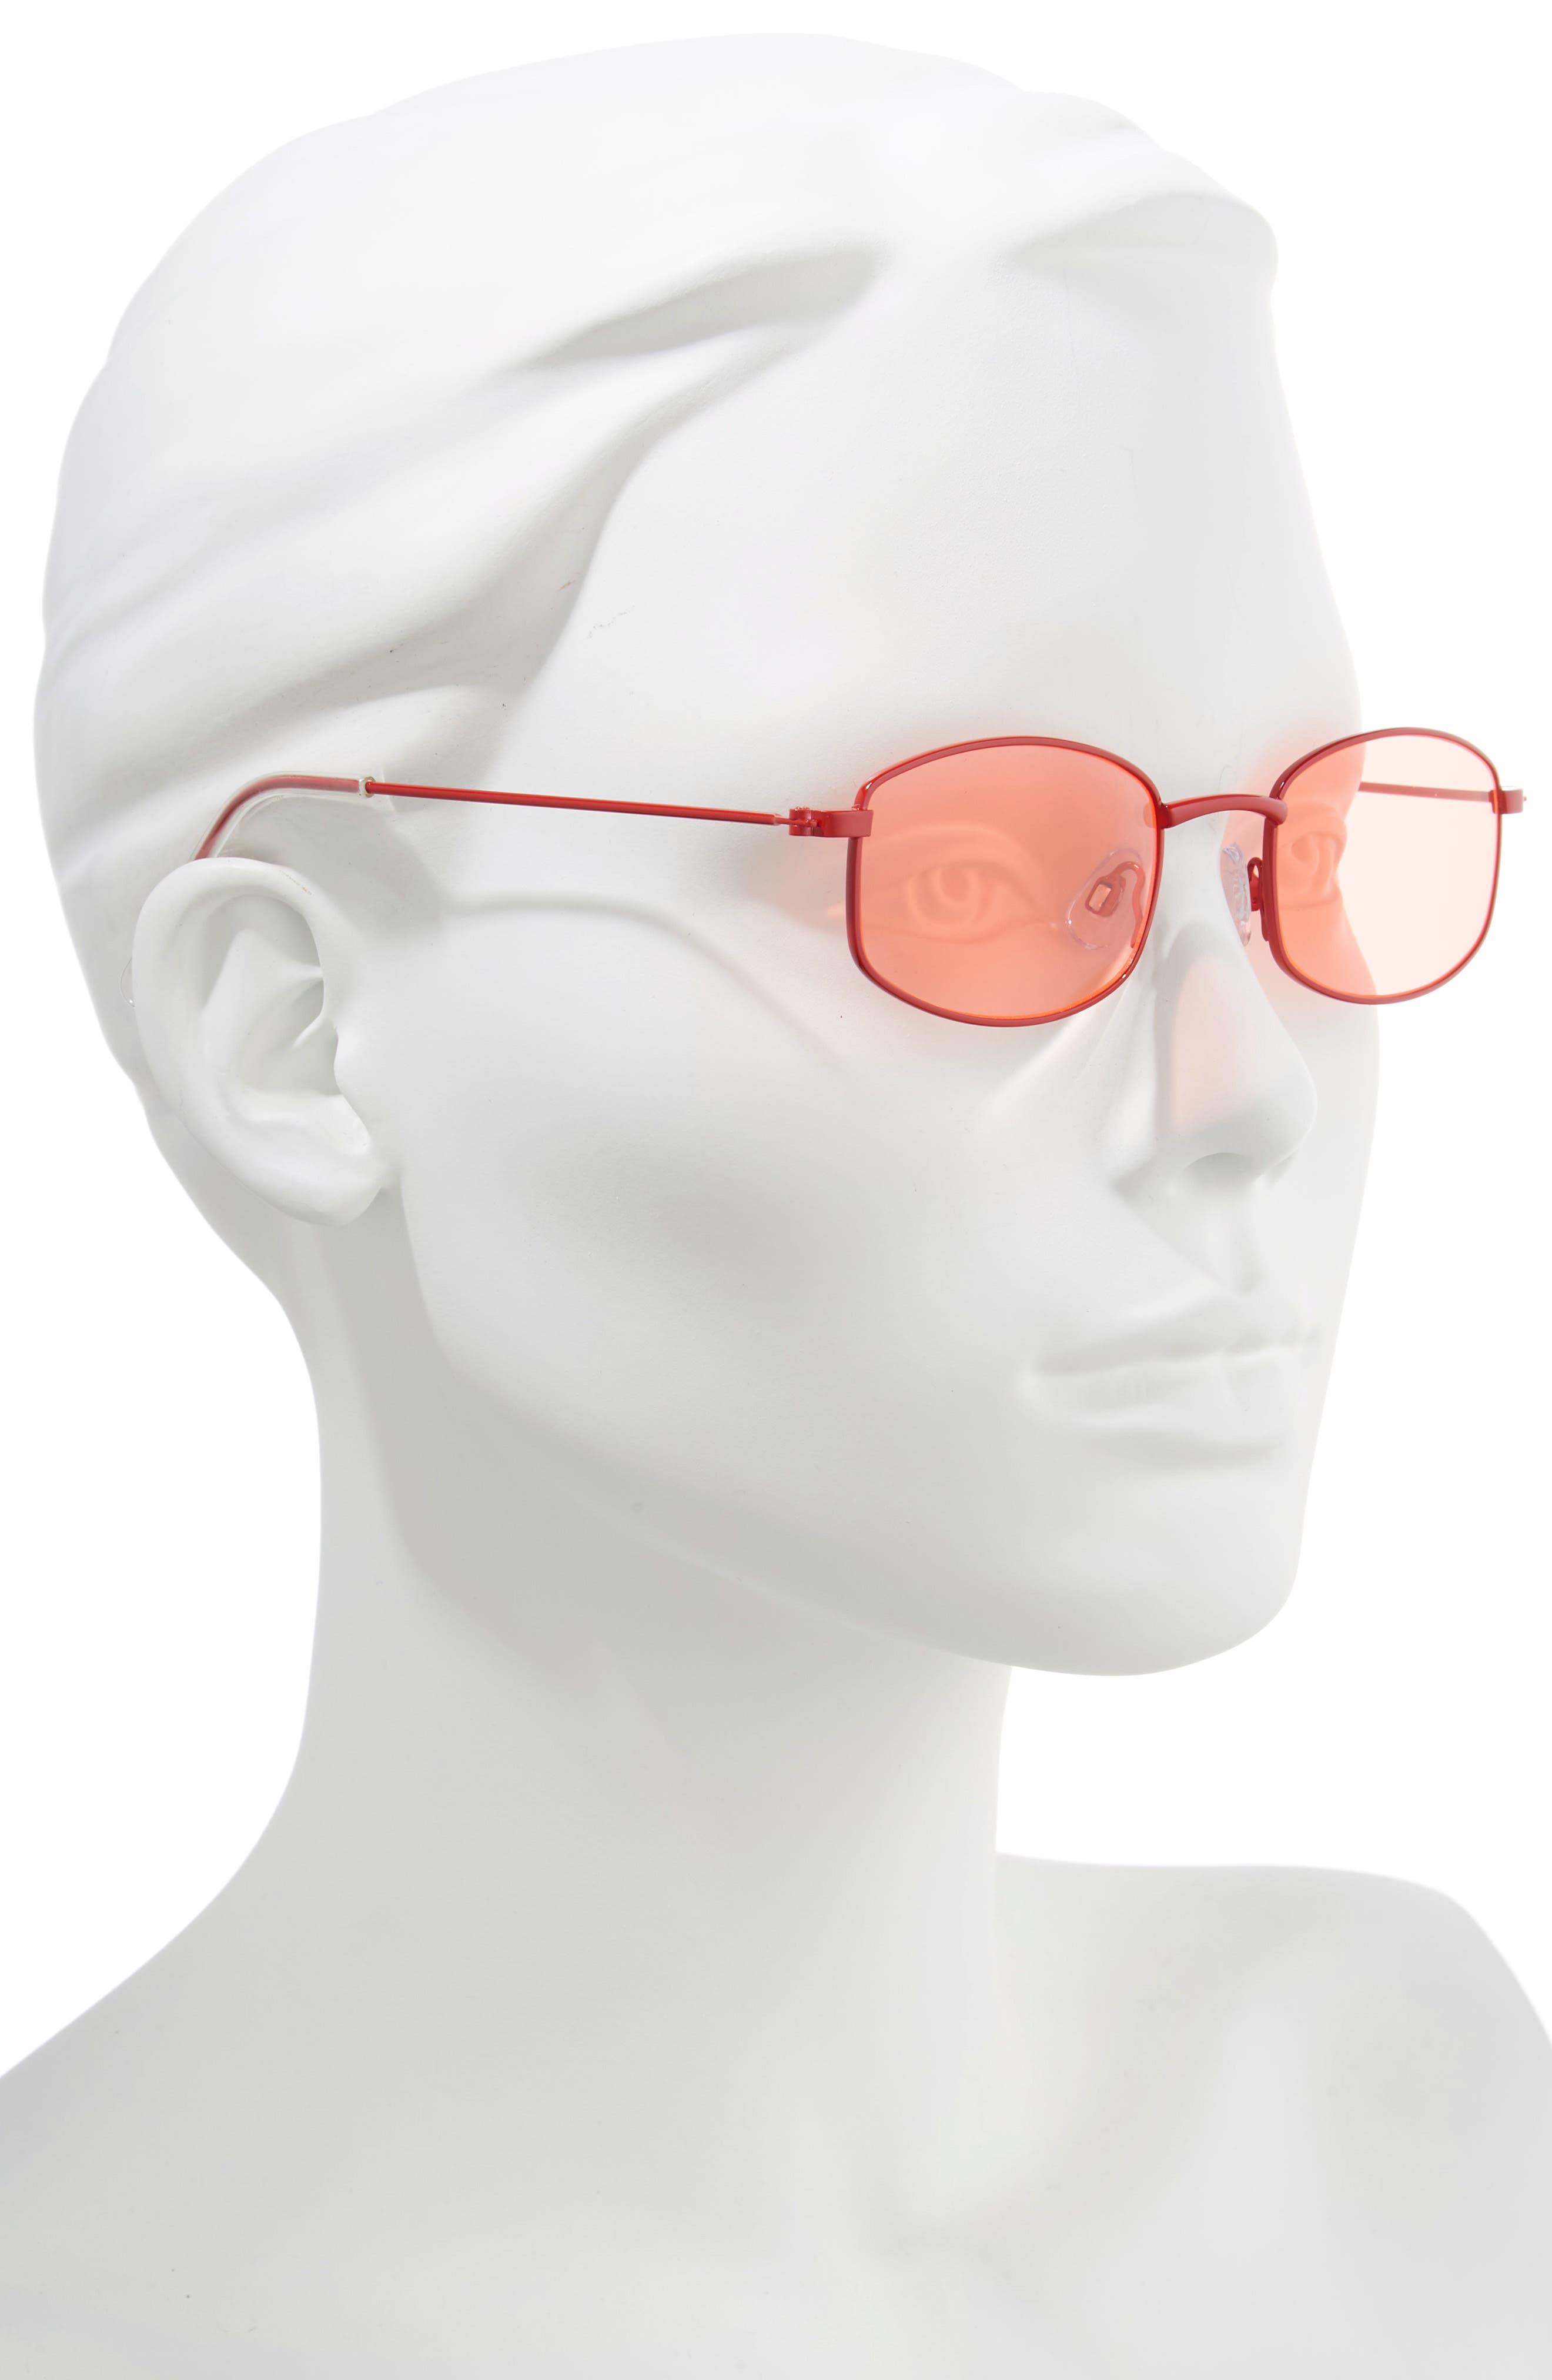 Mini 55mm Square Sunglasses,                             Alternate thumbnail 2, color,                             RED